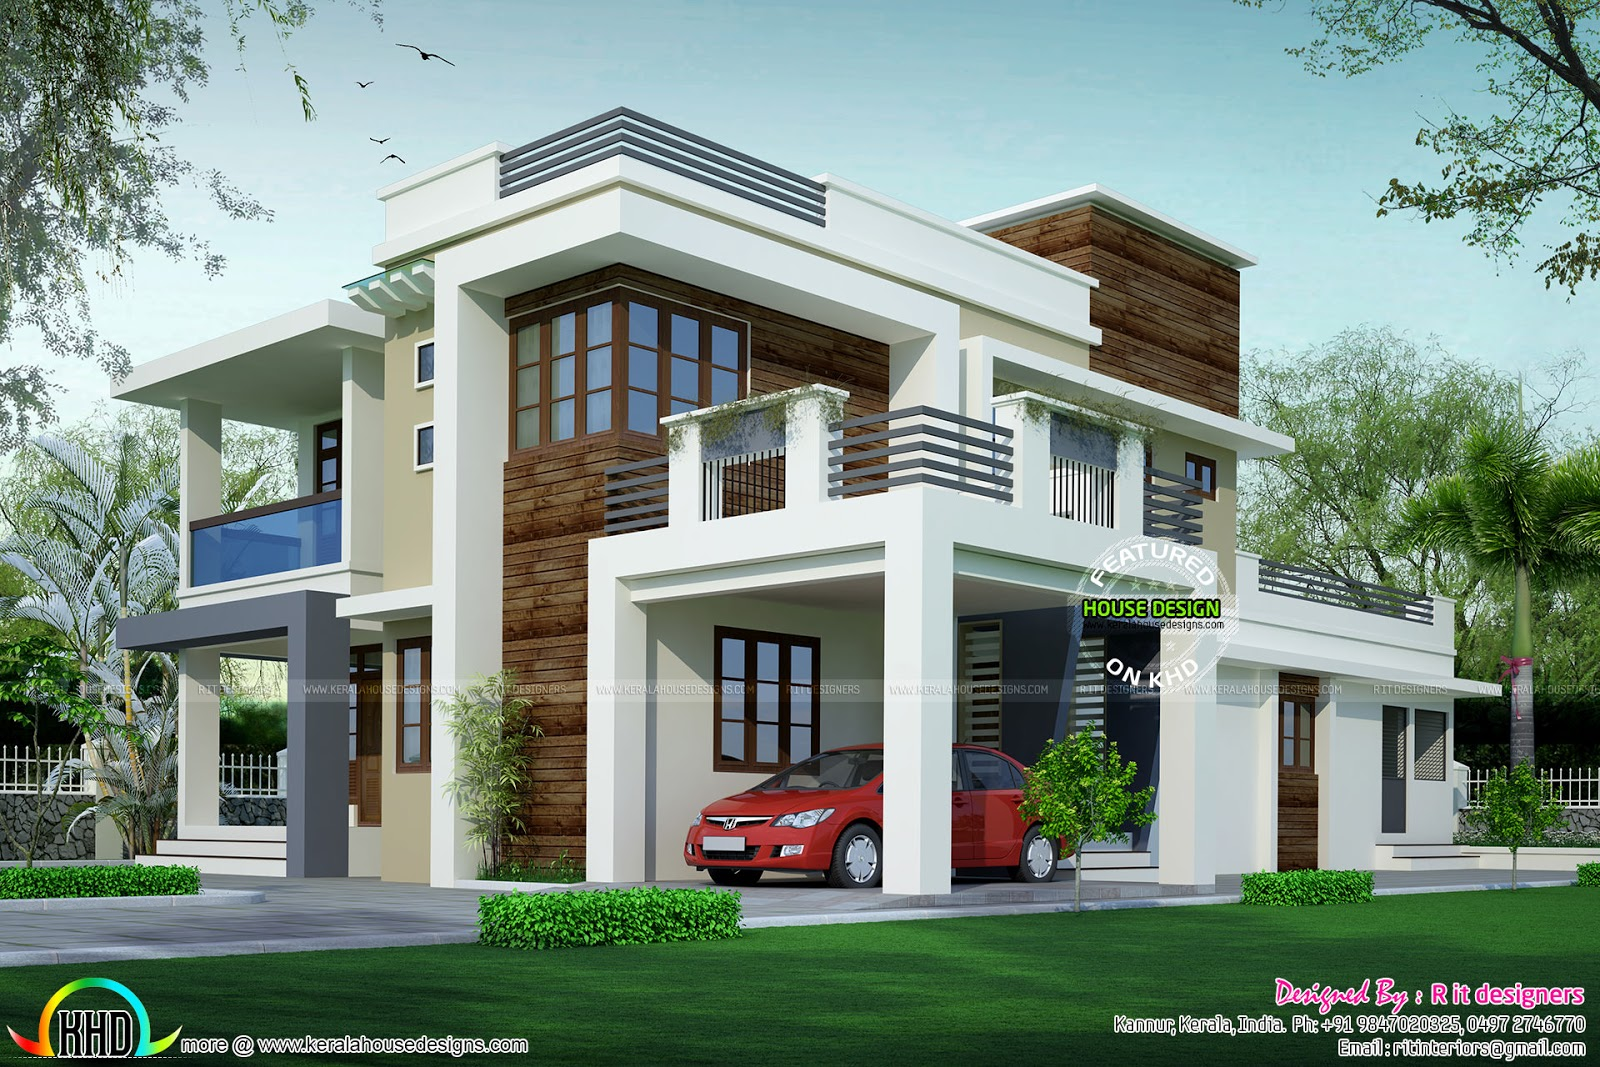 House design contemporary model kerala home design and for New model home design